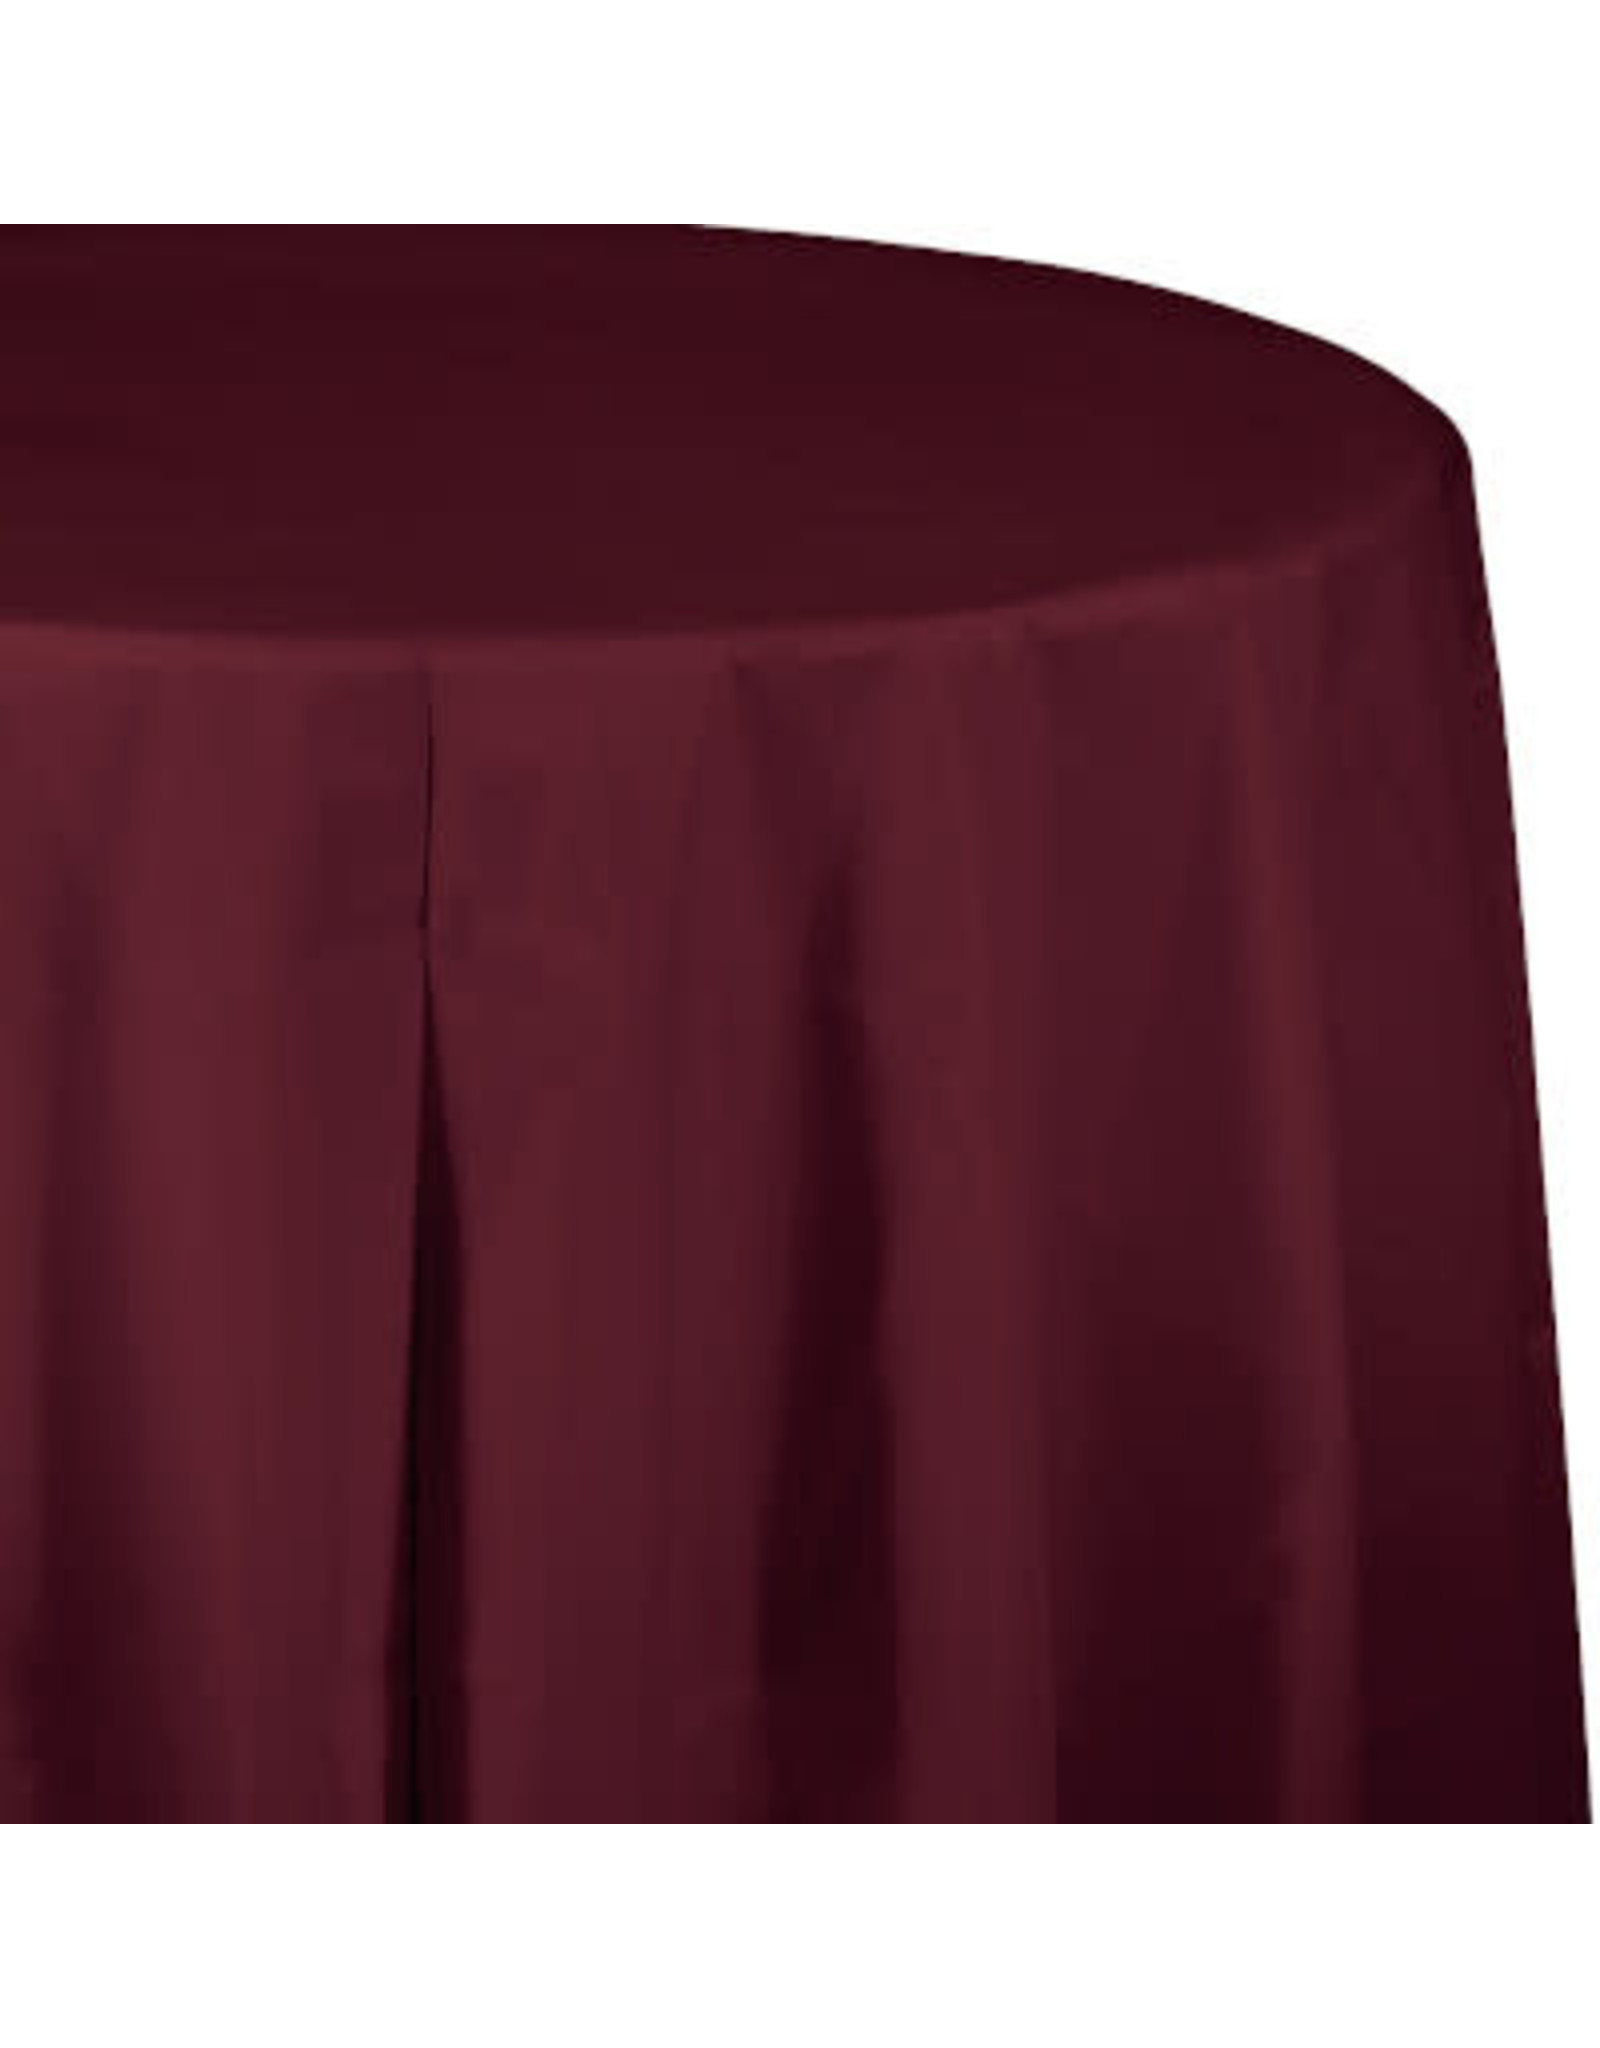 Touch of Color BURGUNDY RED ROUND PLASTIC TABLECLOTH